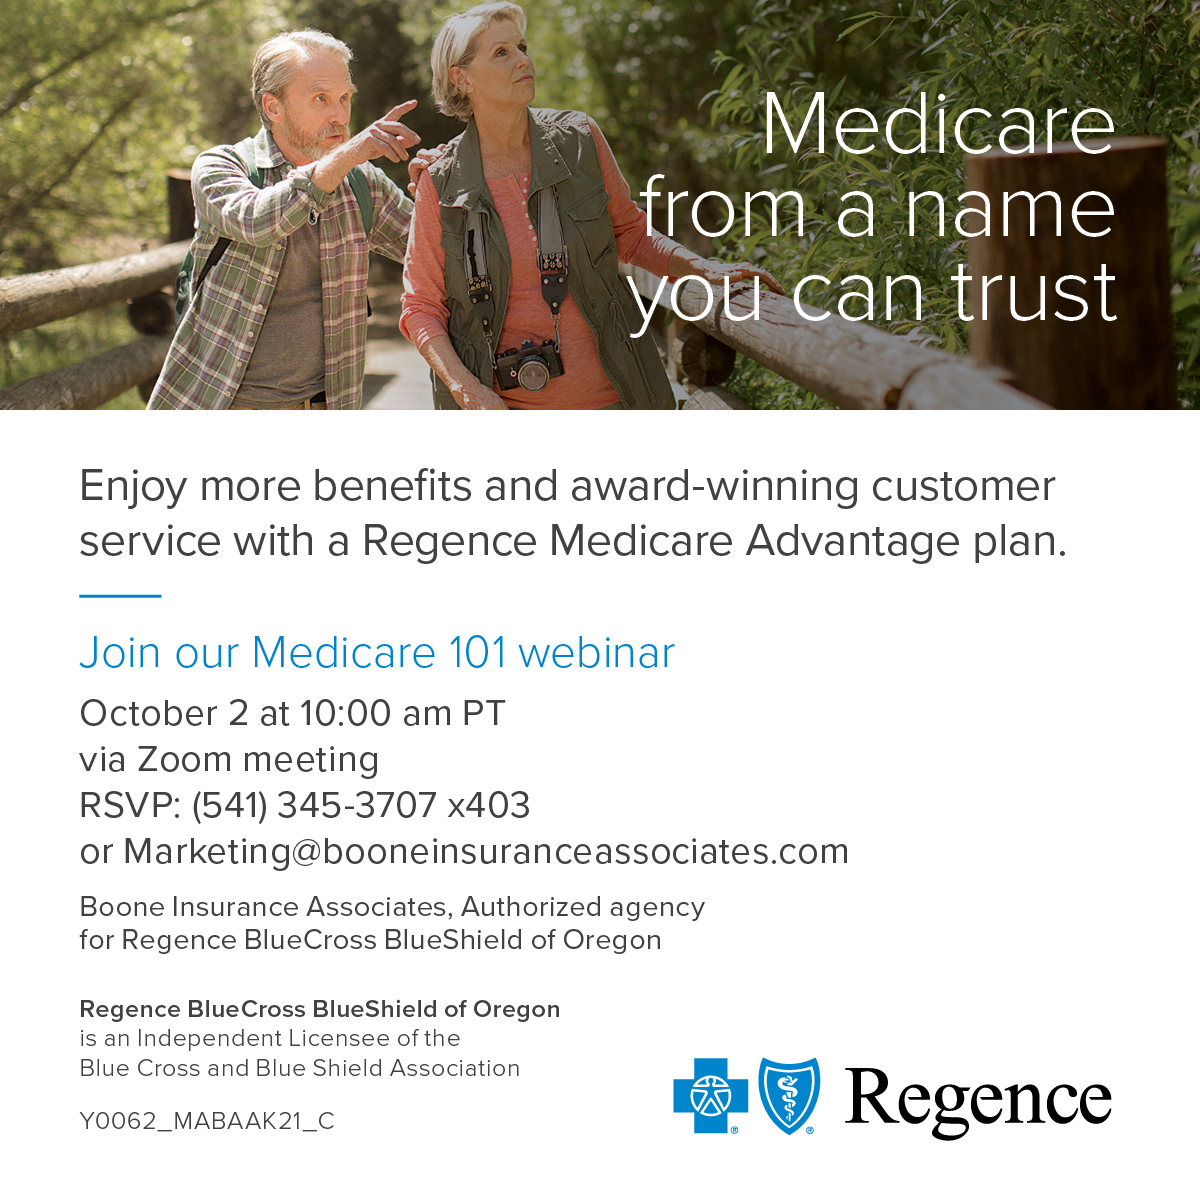 Join Our Medicare 101 Webinar